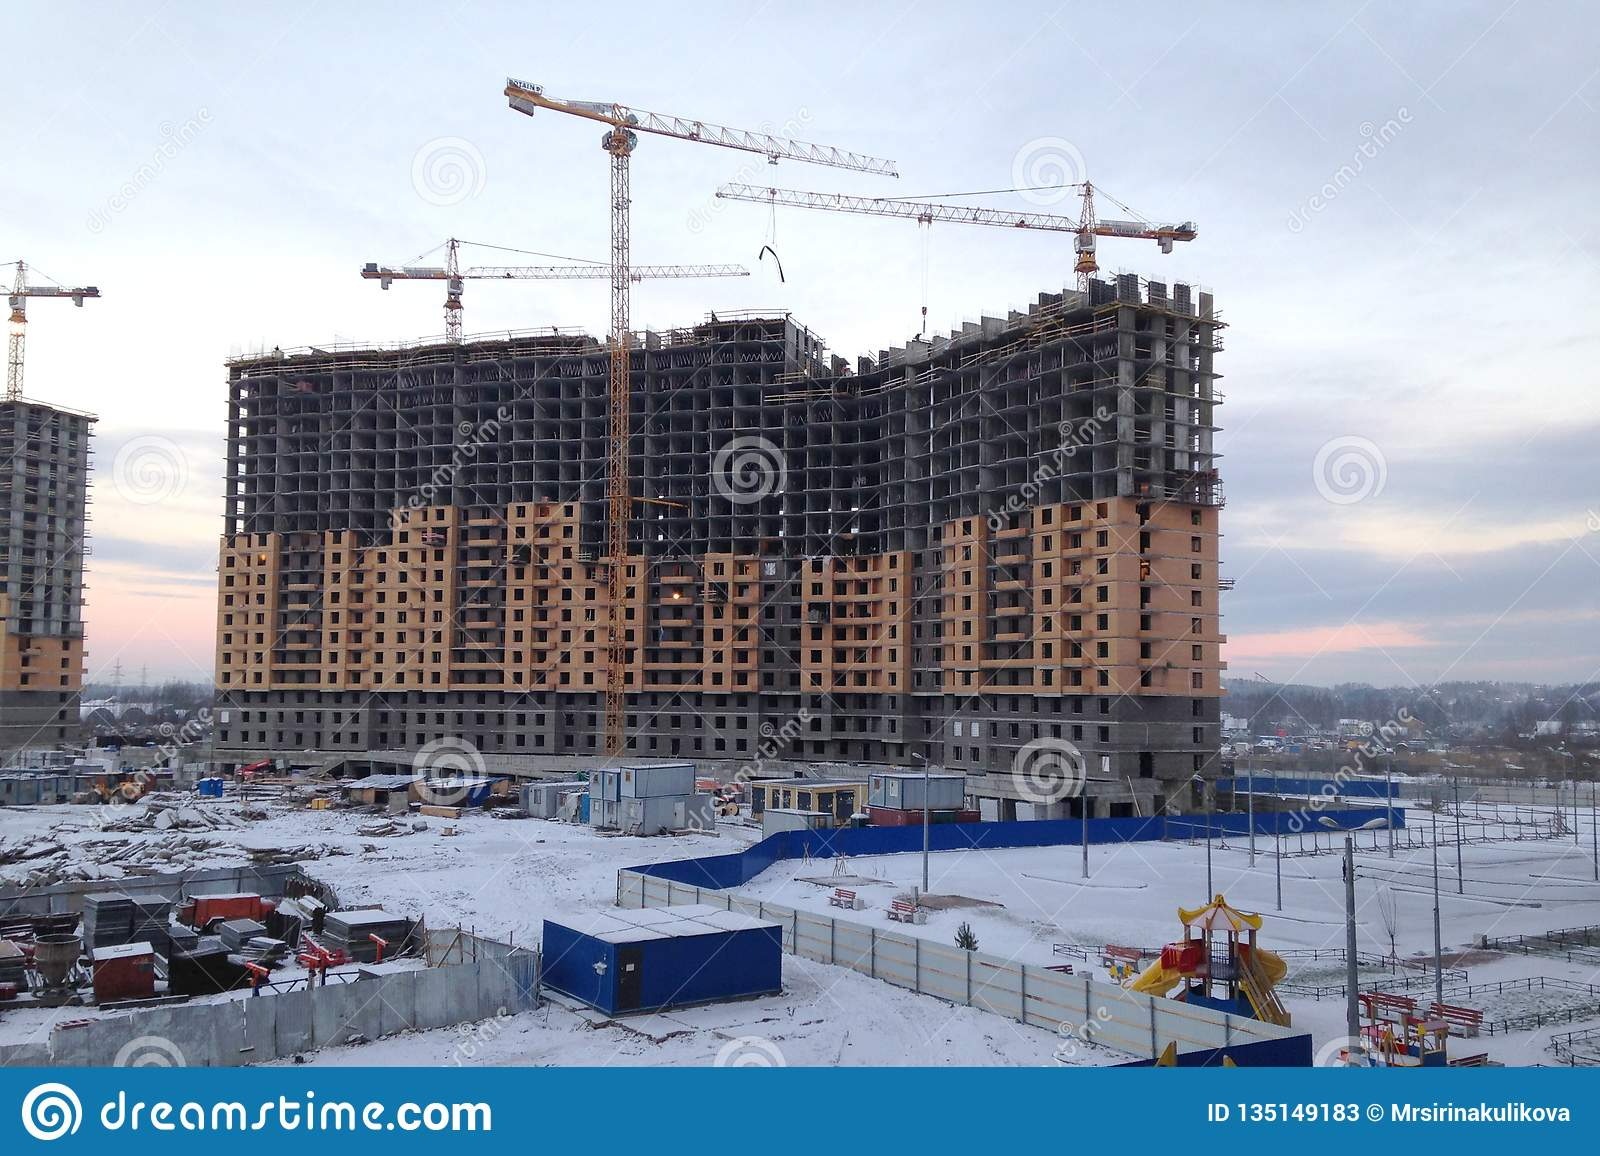 The process of building a large multi-storey residential building in the winter. The work of construction cranes. Half built house